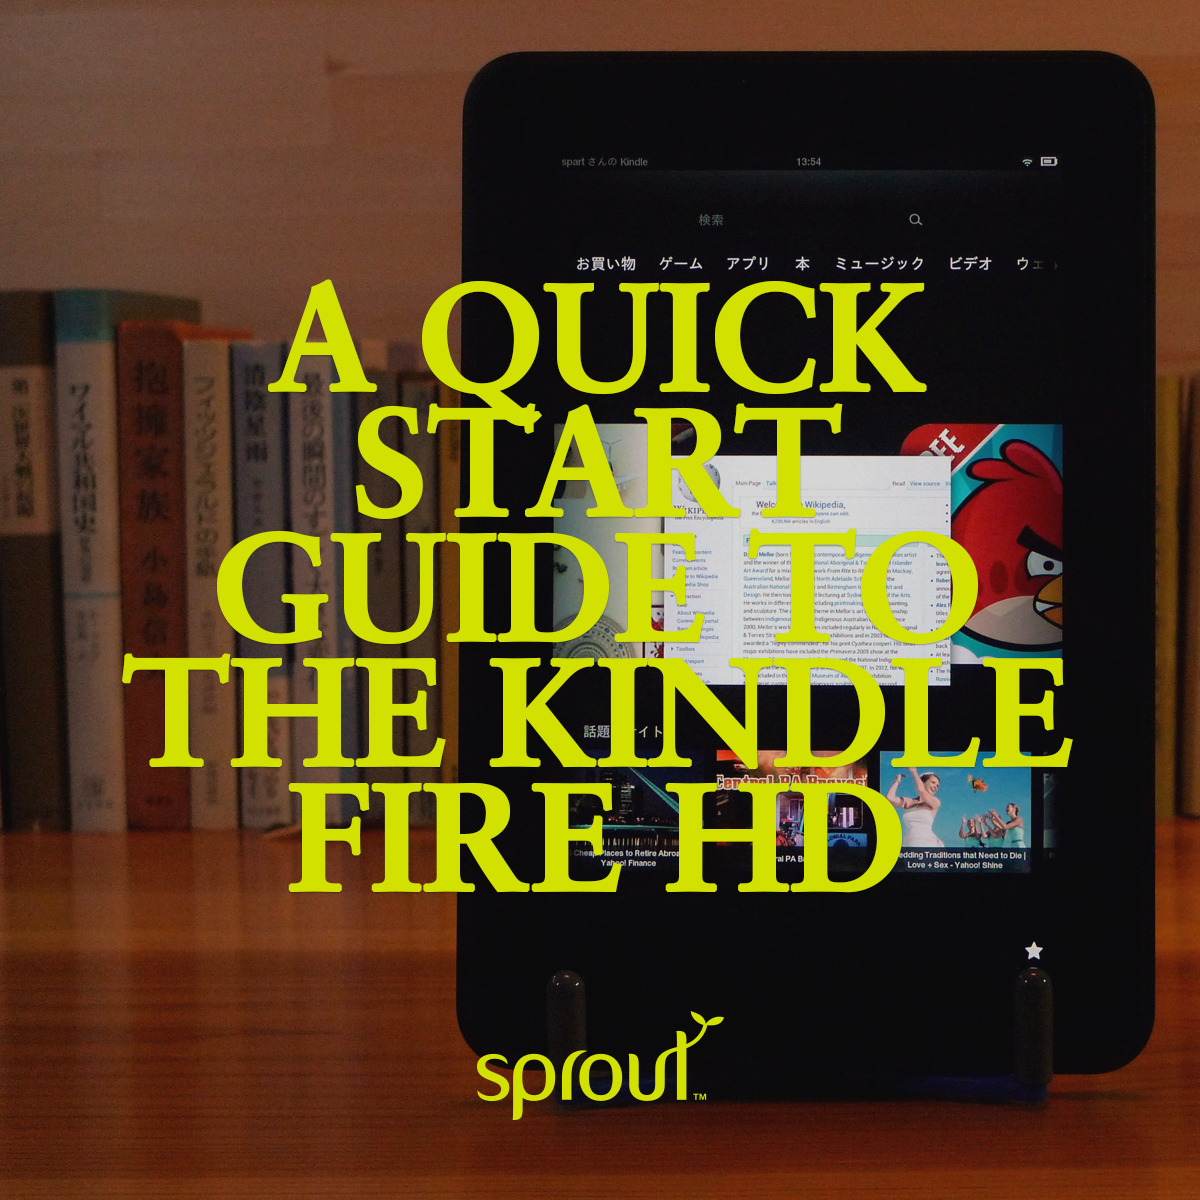 a quick start guide to the kindle fire hd sprout accessories online rh sproutinc com au Windows 8 Quick Start Guide Quick Start Guide Template